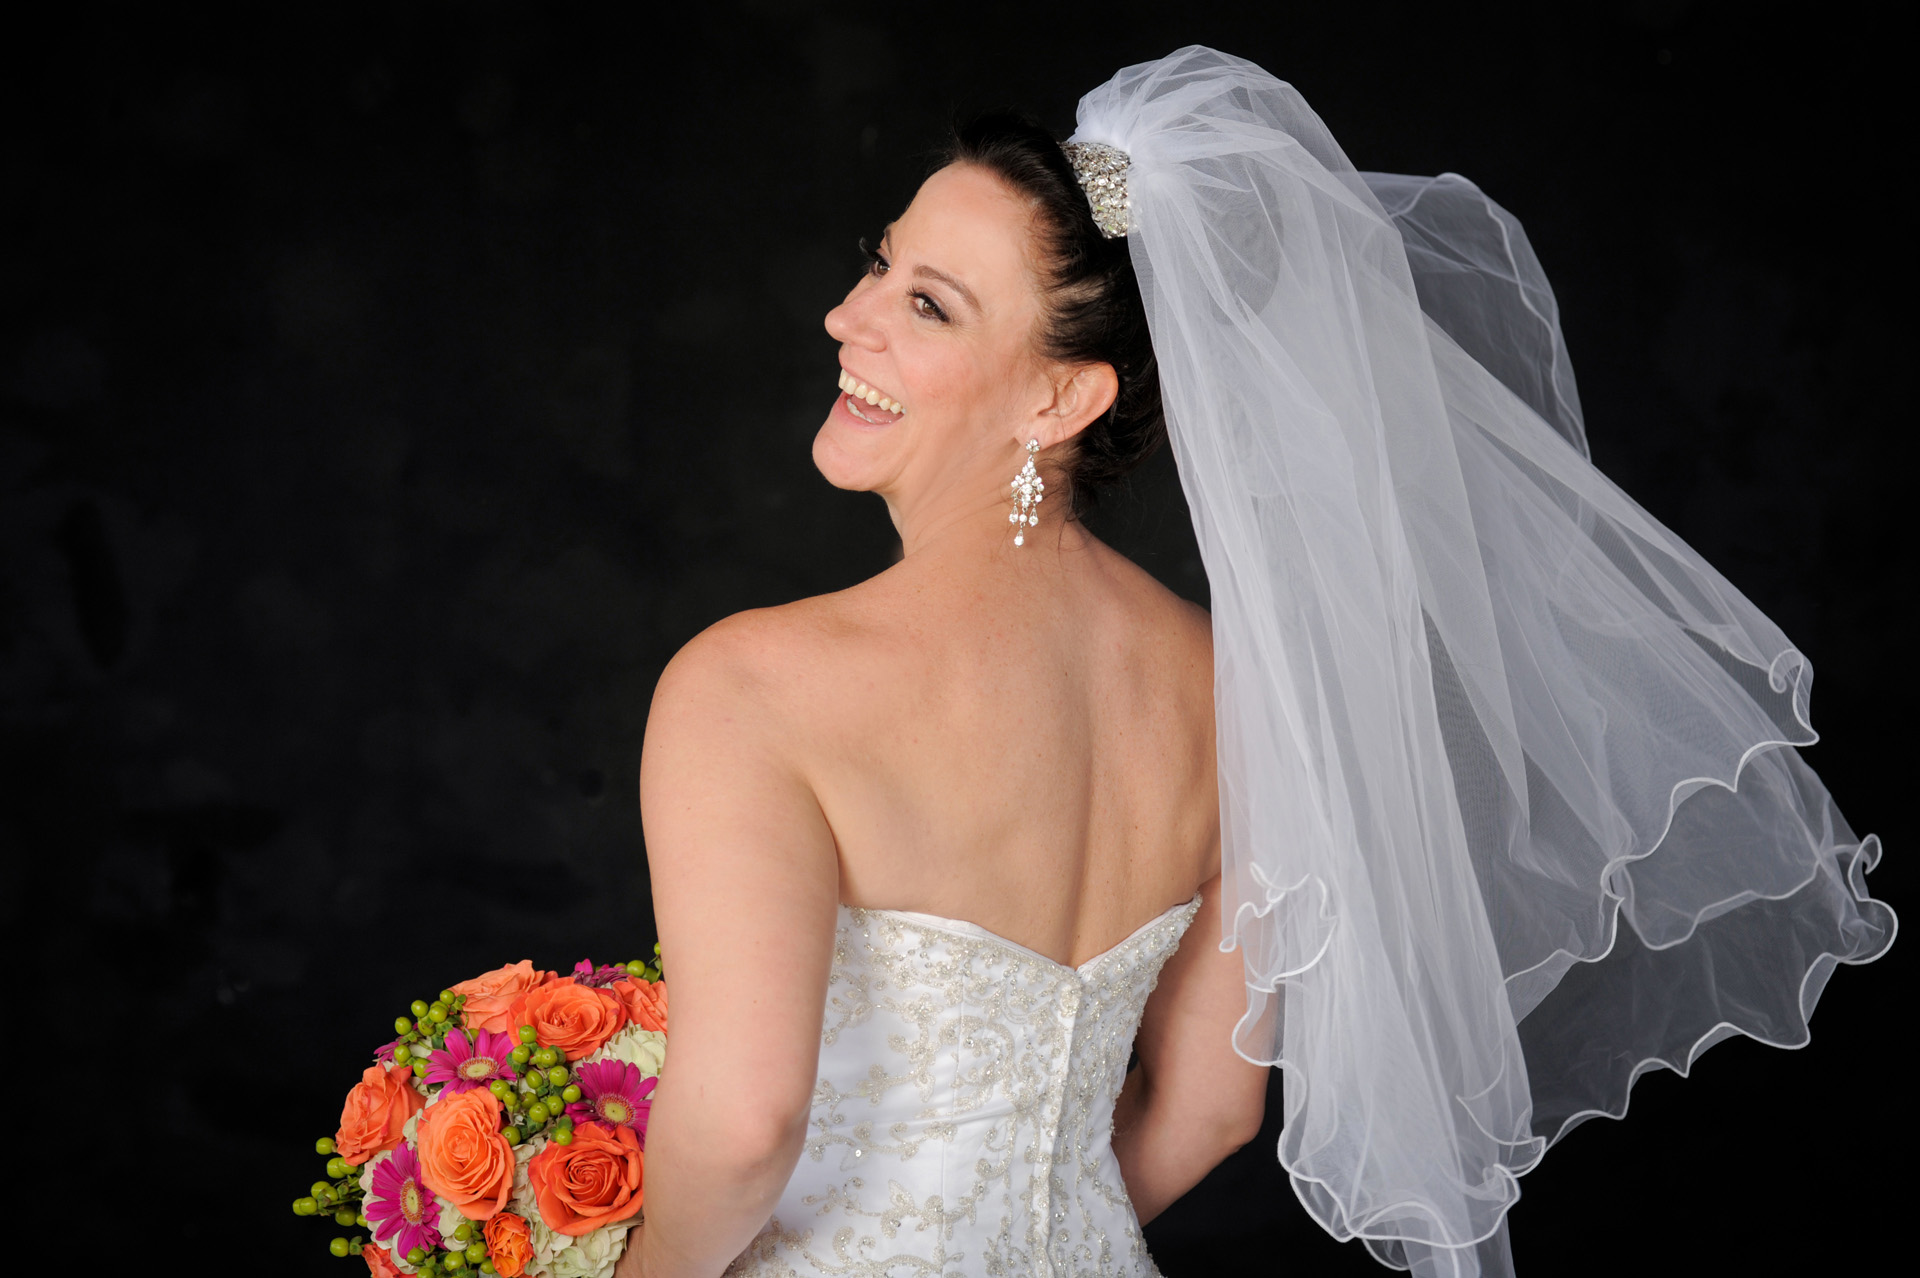 A family oriented wedding in Michigan features a bride in perfect light for a very quick photo shoot capturing fleeting moments before her wedding at the Wyndham Garden Hotel in Sterling Heights, Michigan (formerly known as the Sterling Inn) in Macomb County, Michigan.